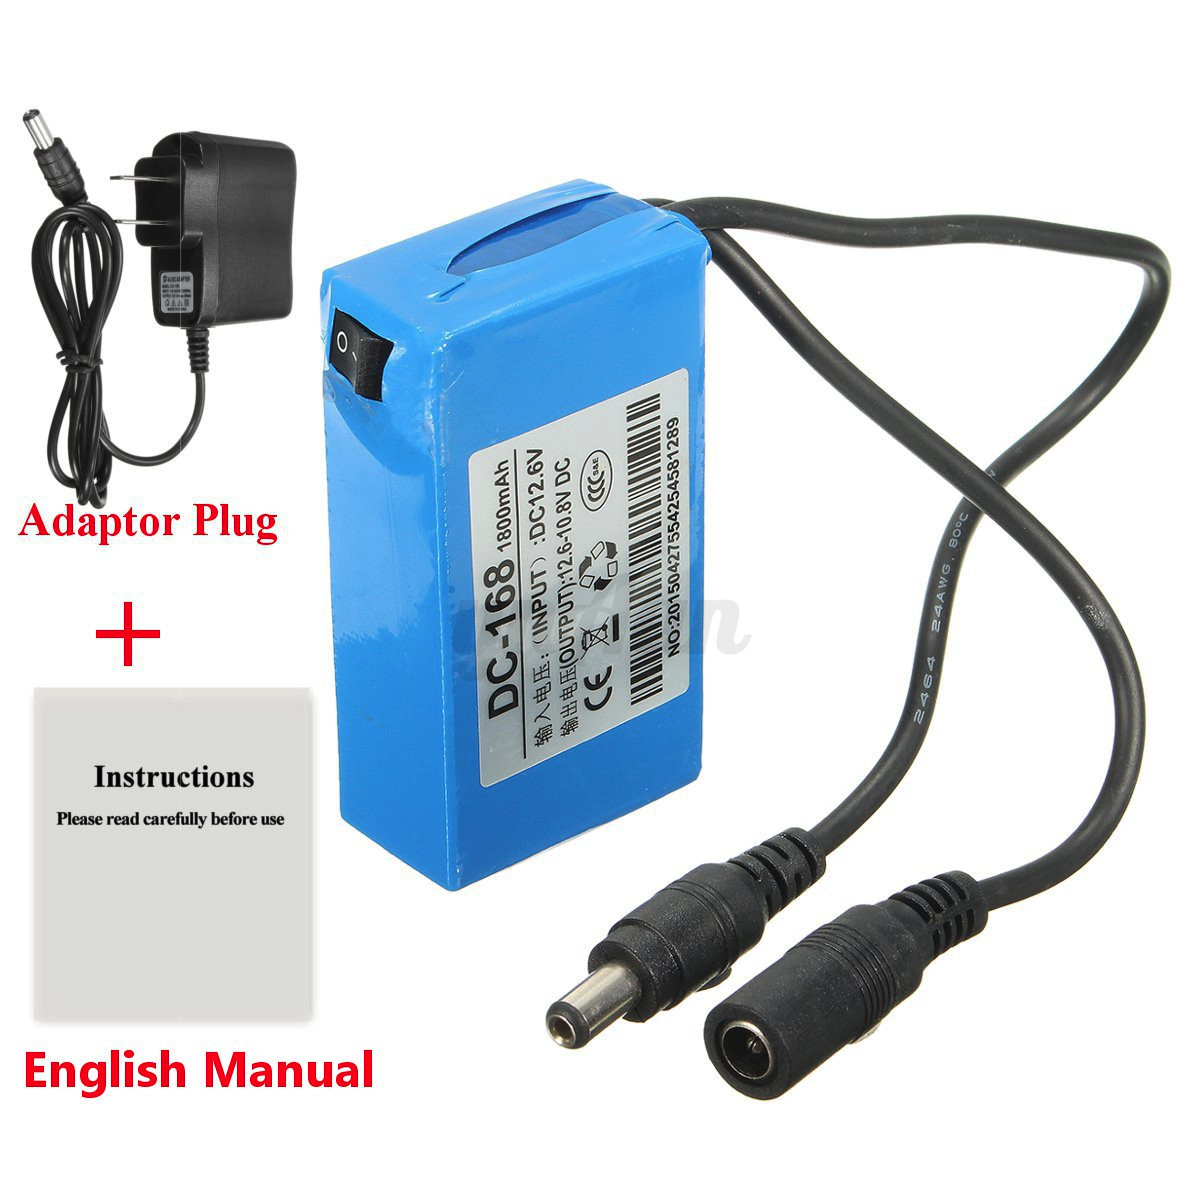 dc 168 12v monitor power supply rechargeable li ion lithium battery w us plug ebay. Black Bedroom Furniture Sets. Home Design Ideas